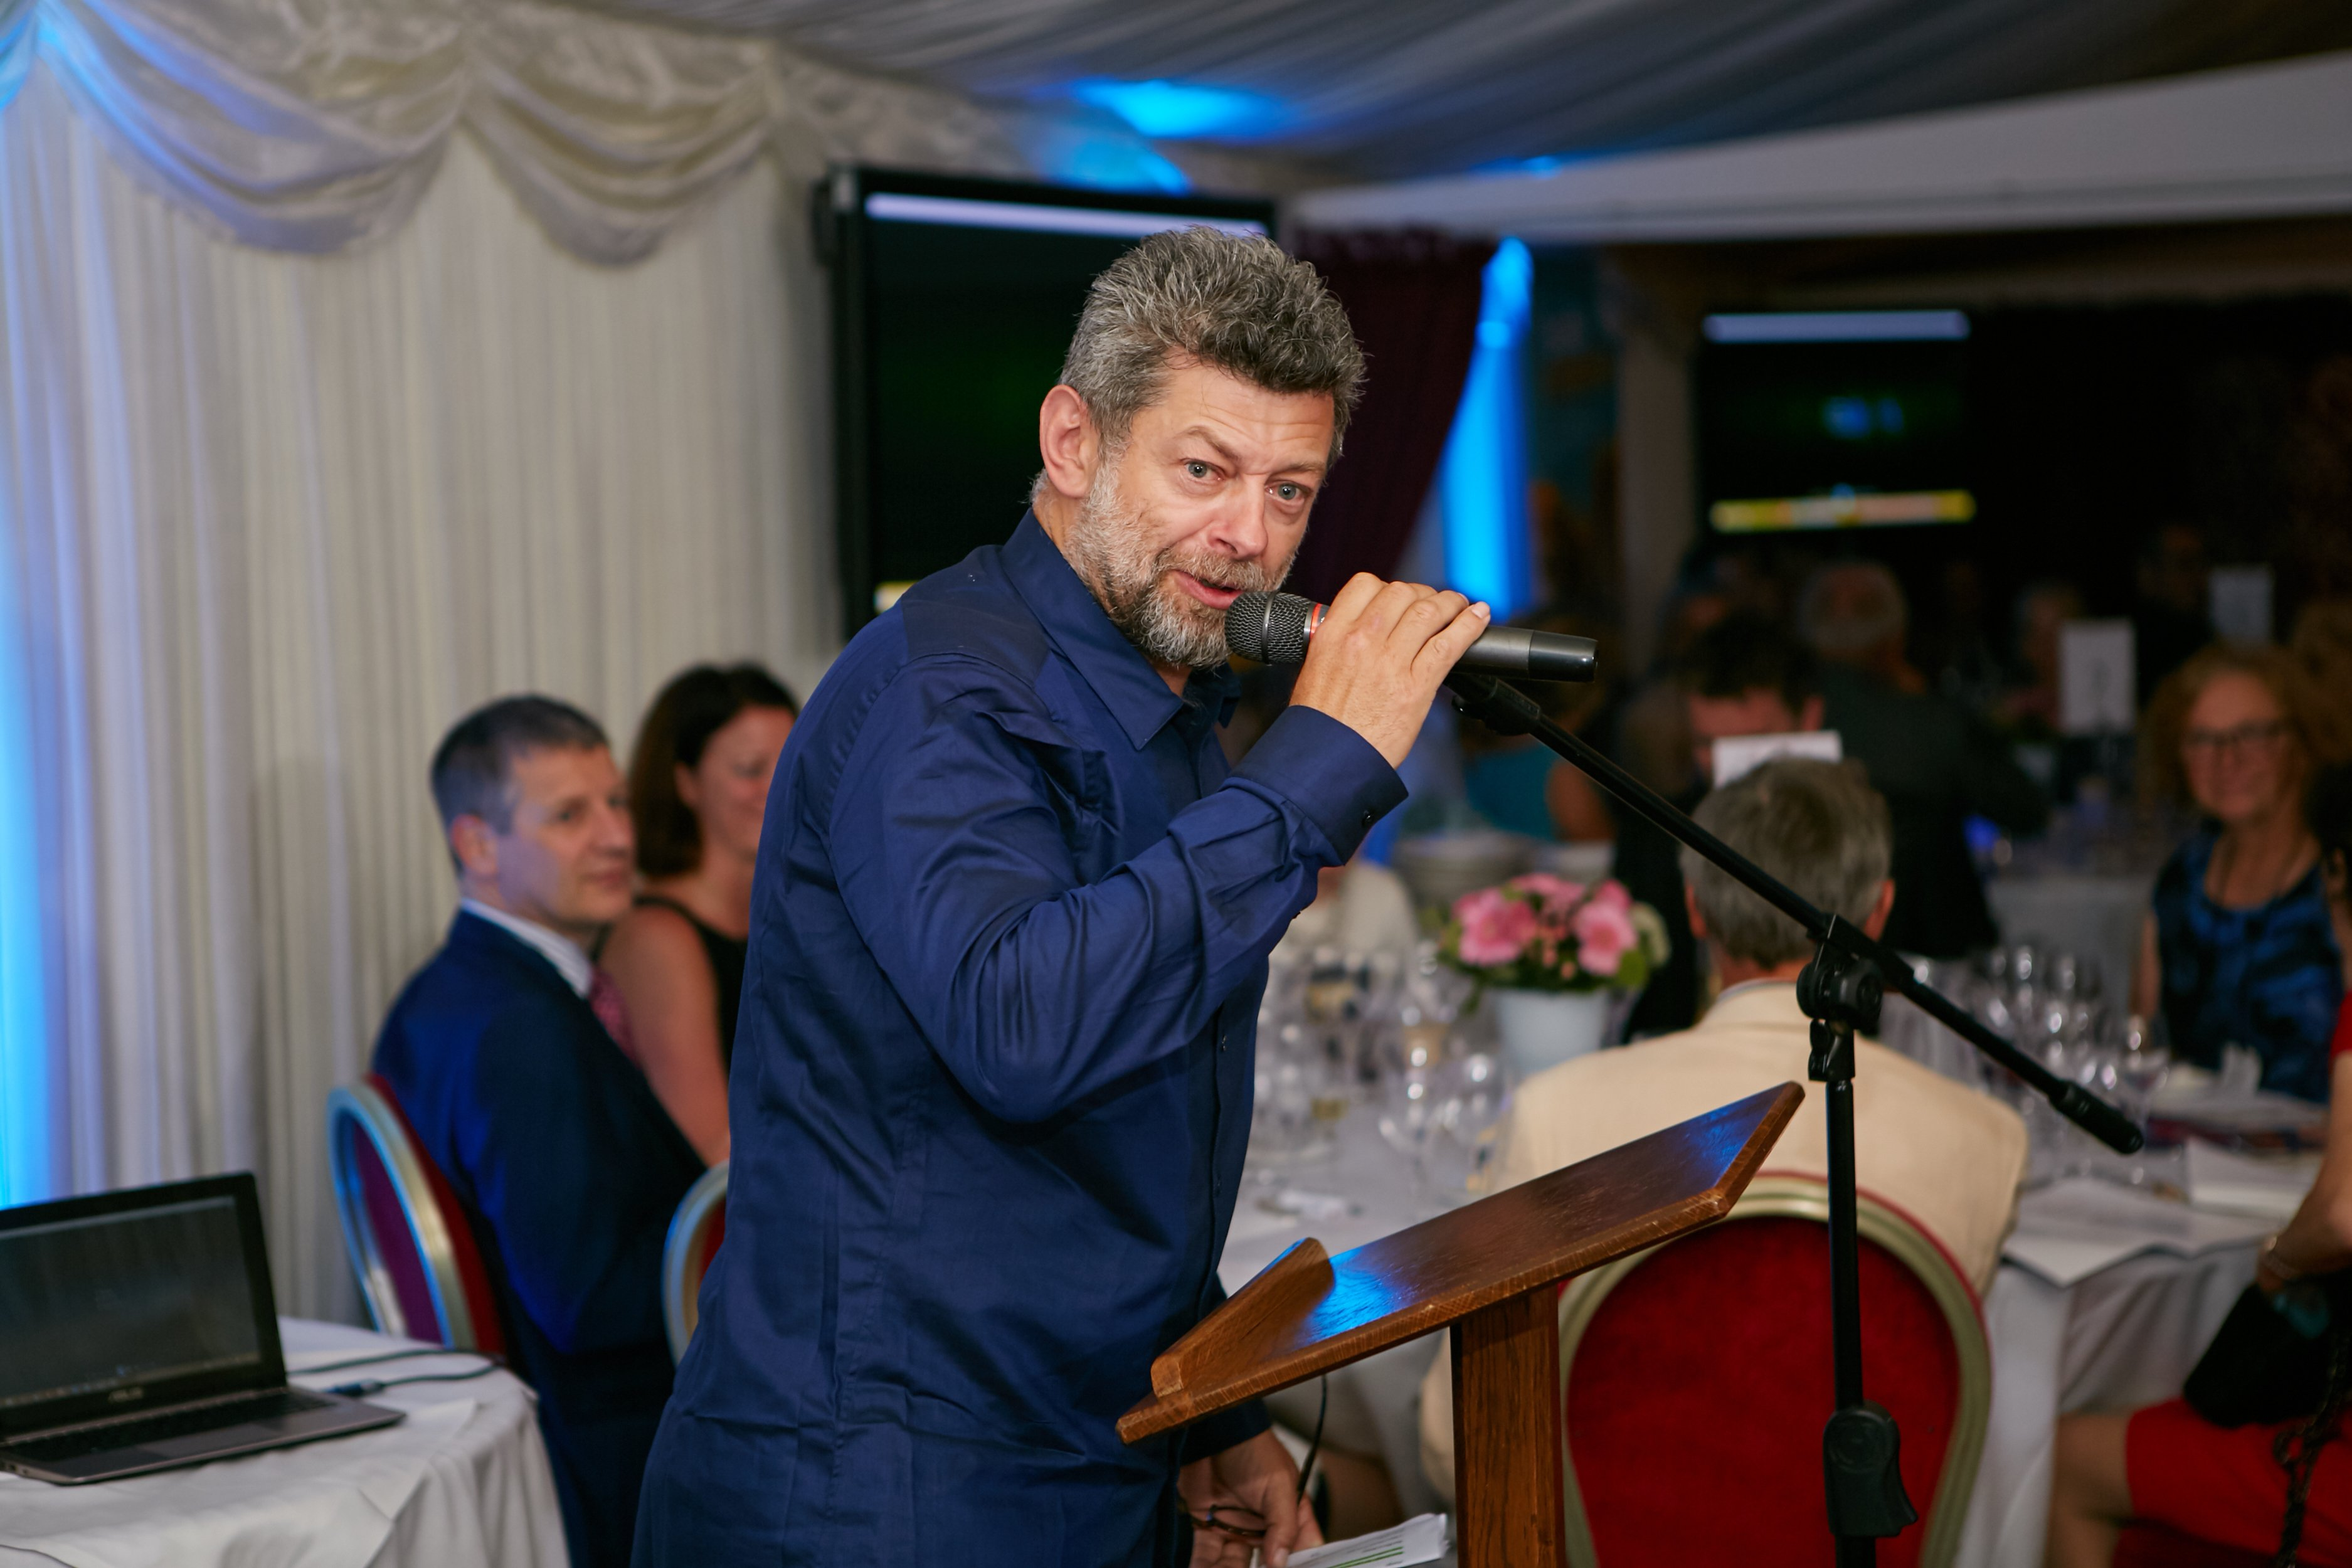 Actor and director Andy Serkis was master of ceremonies at the launch event for SpringBoard.